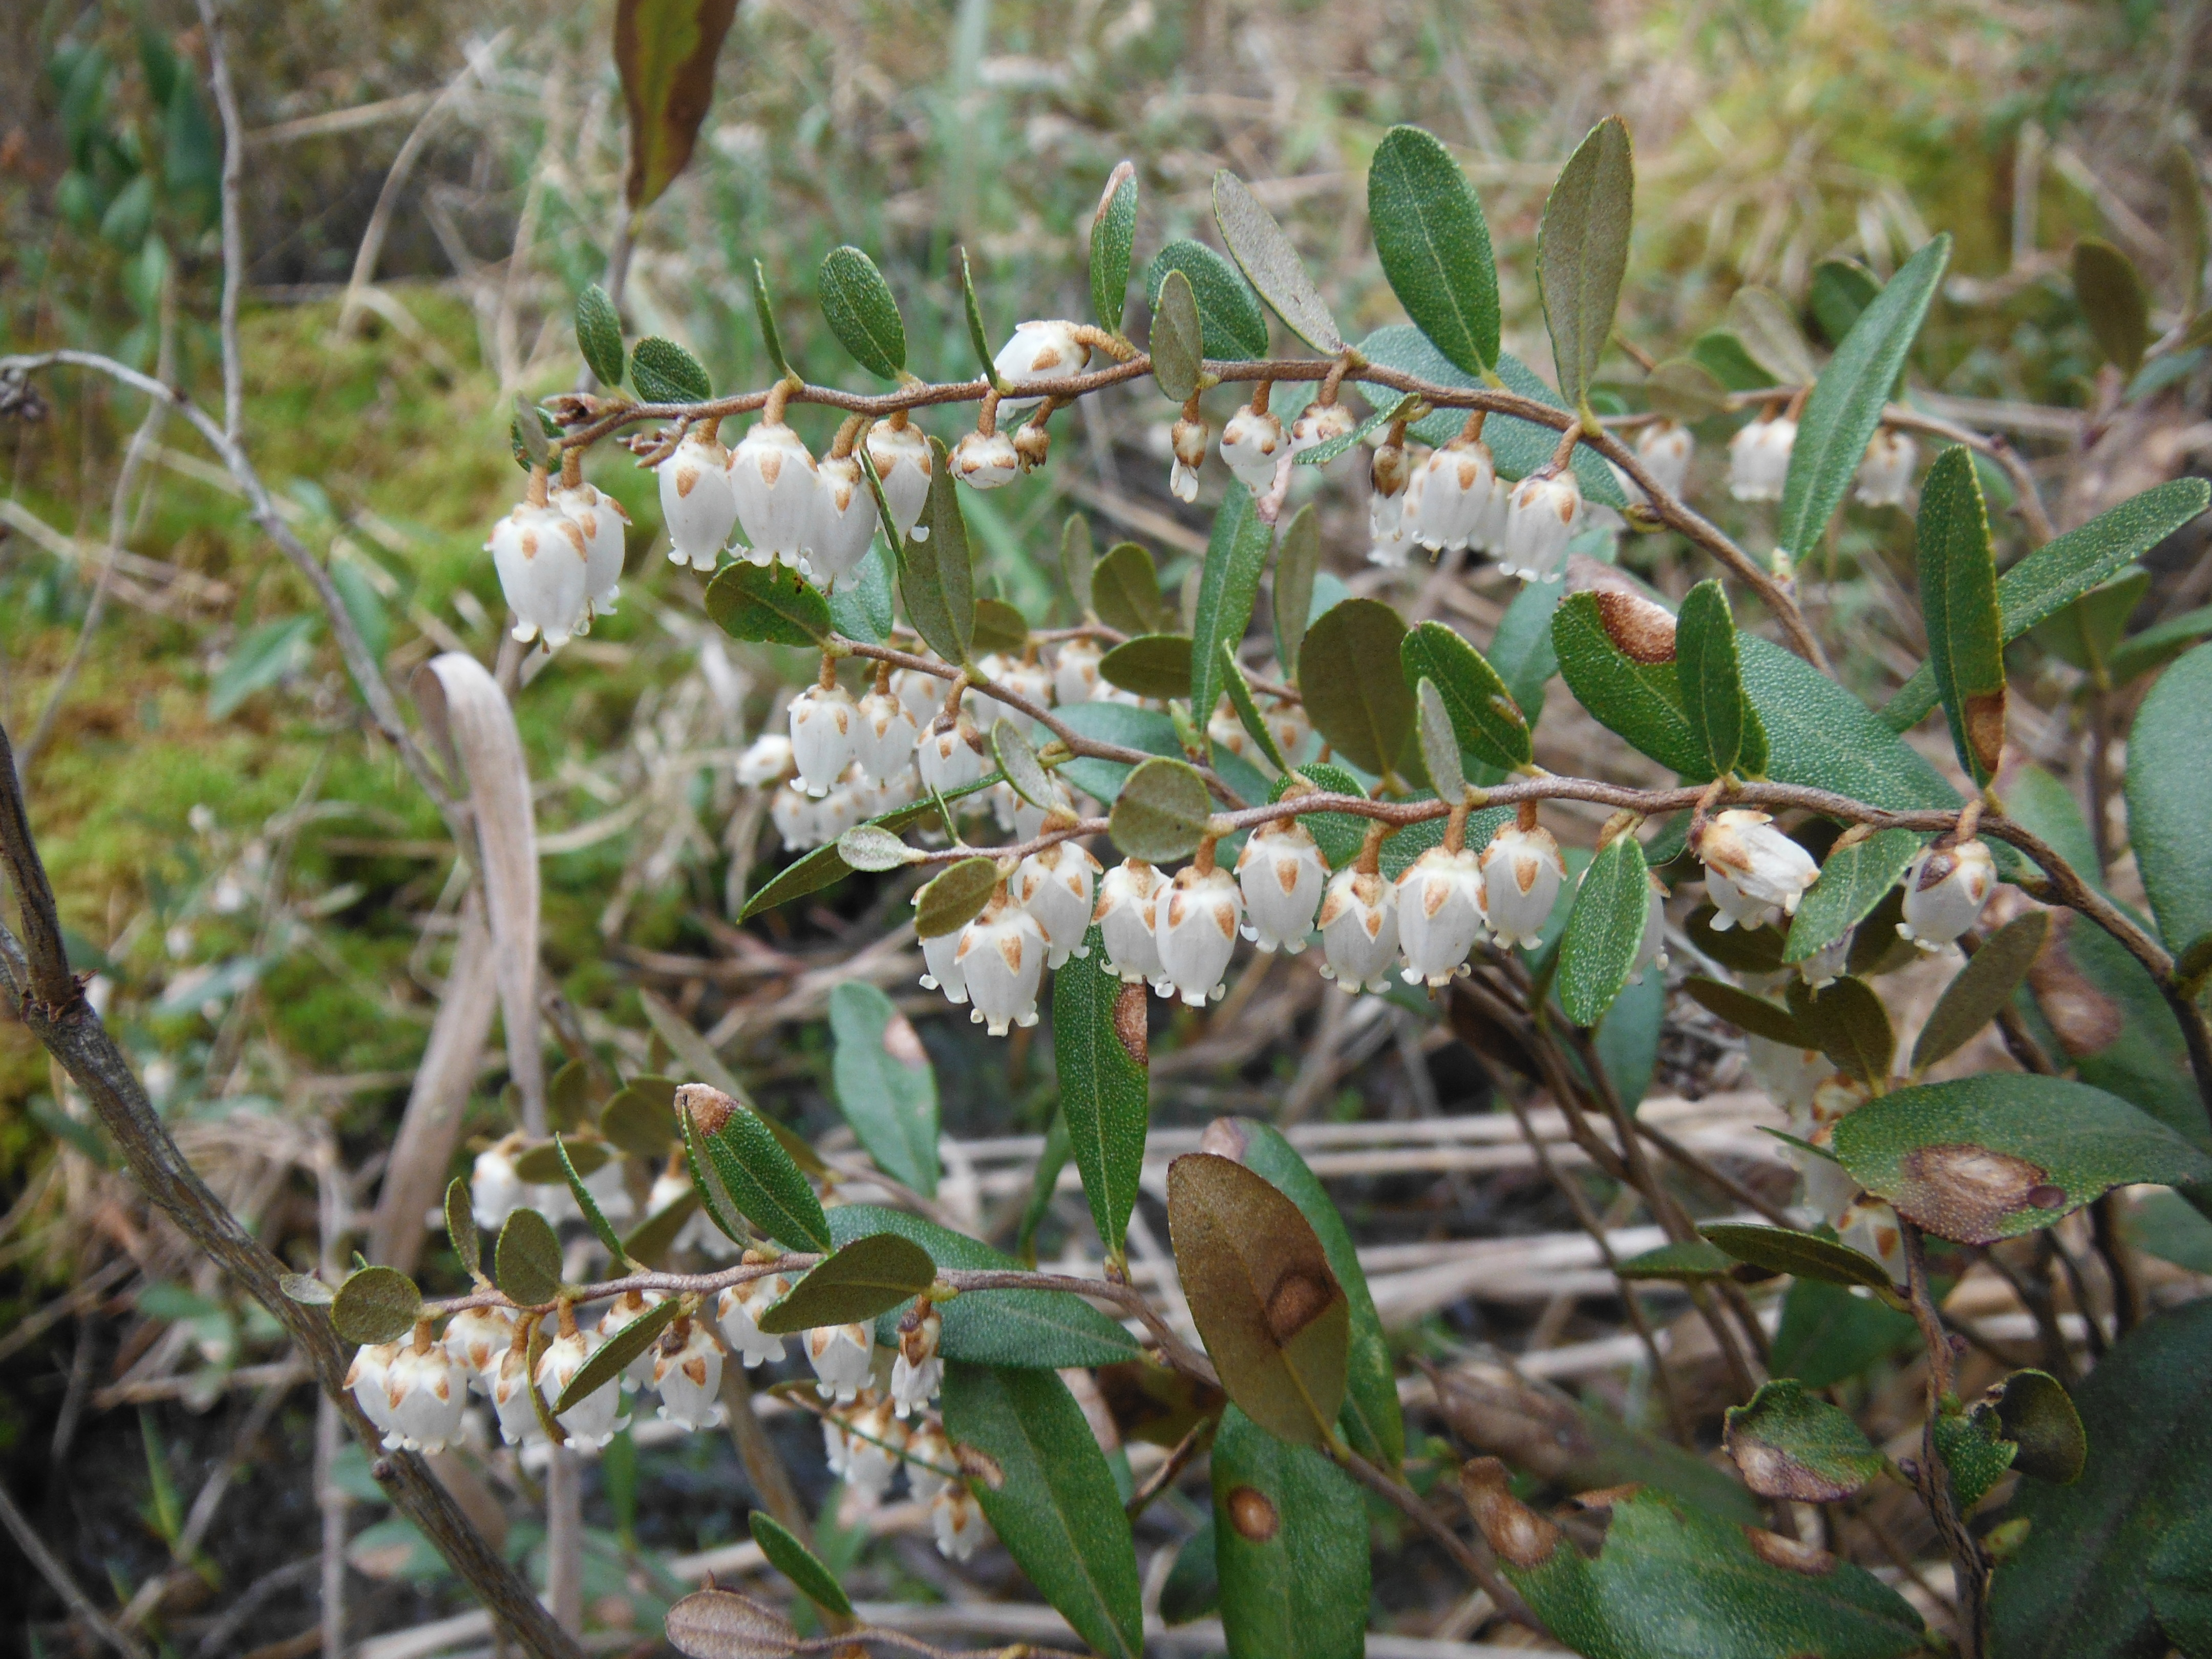 Leatherleaf (Chamedaphne calyculata) blooming in a nearby boggy spot